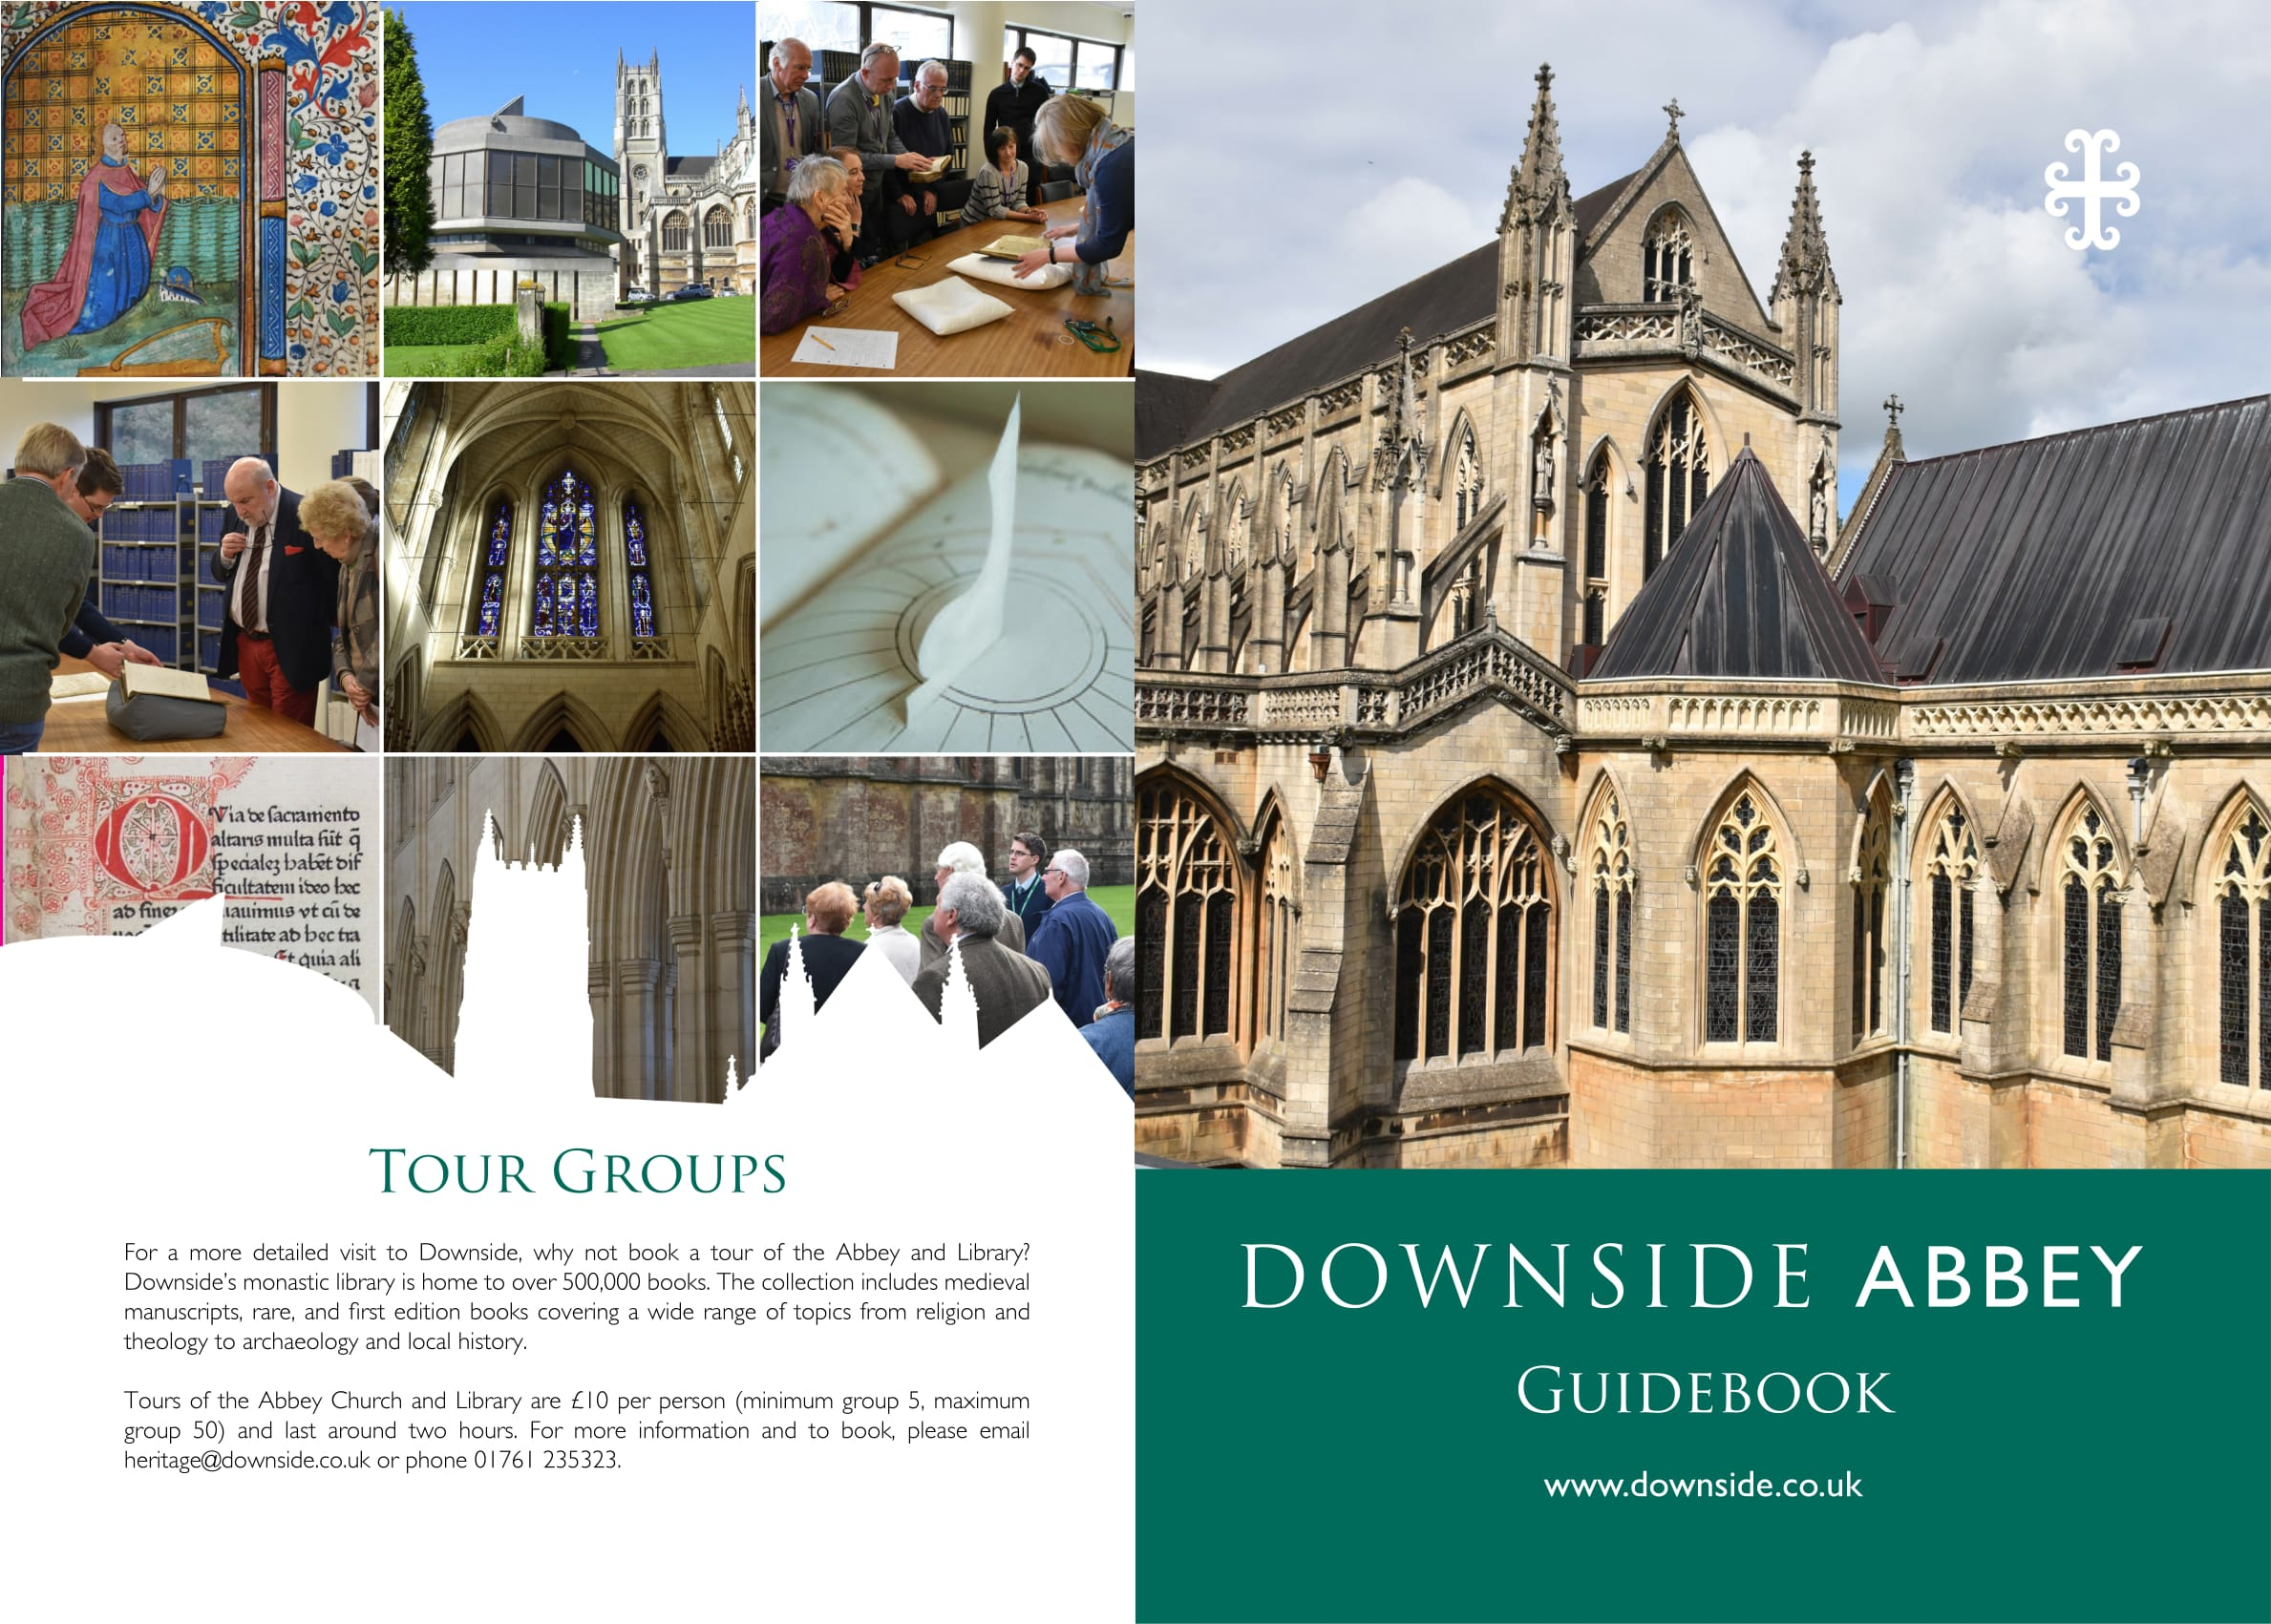 Downside abbey guidebook